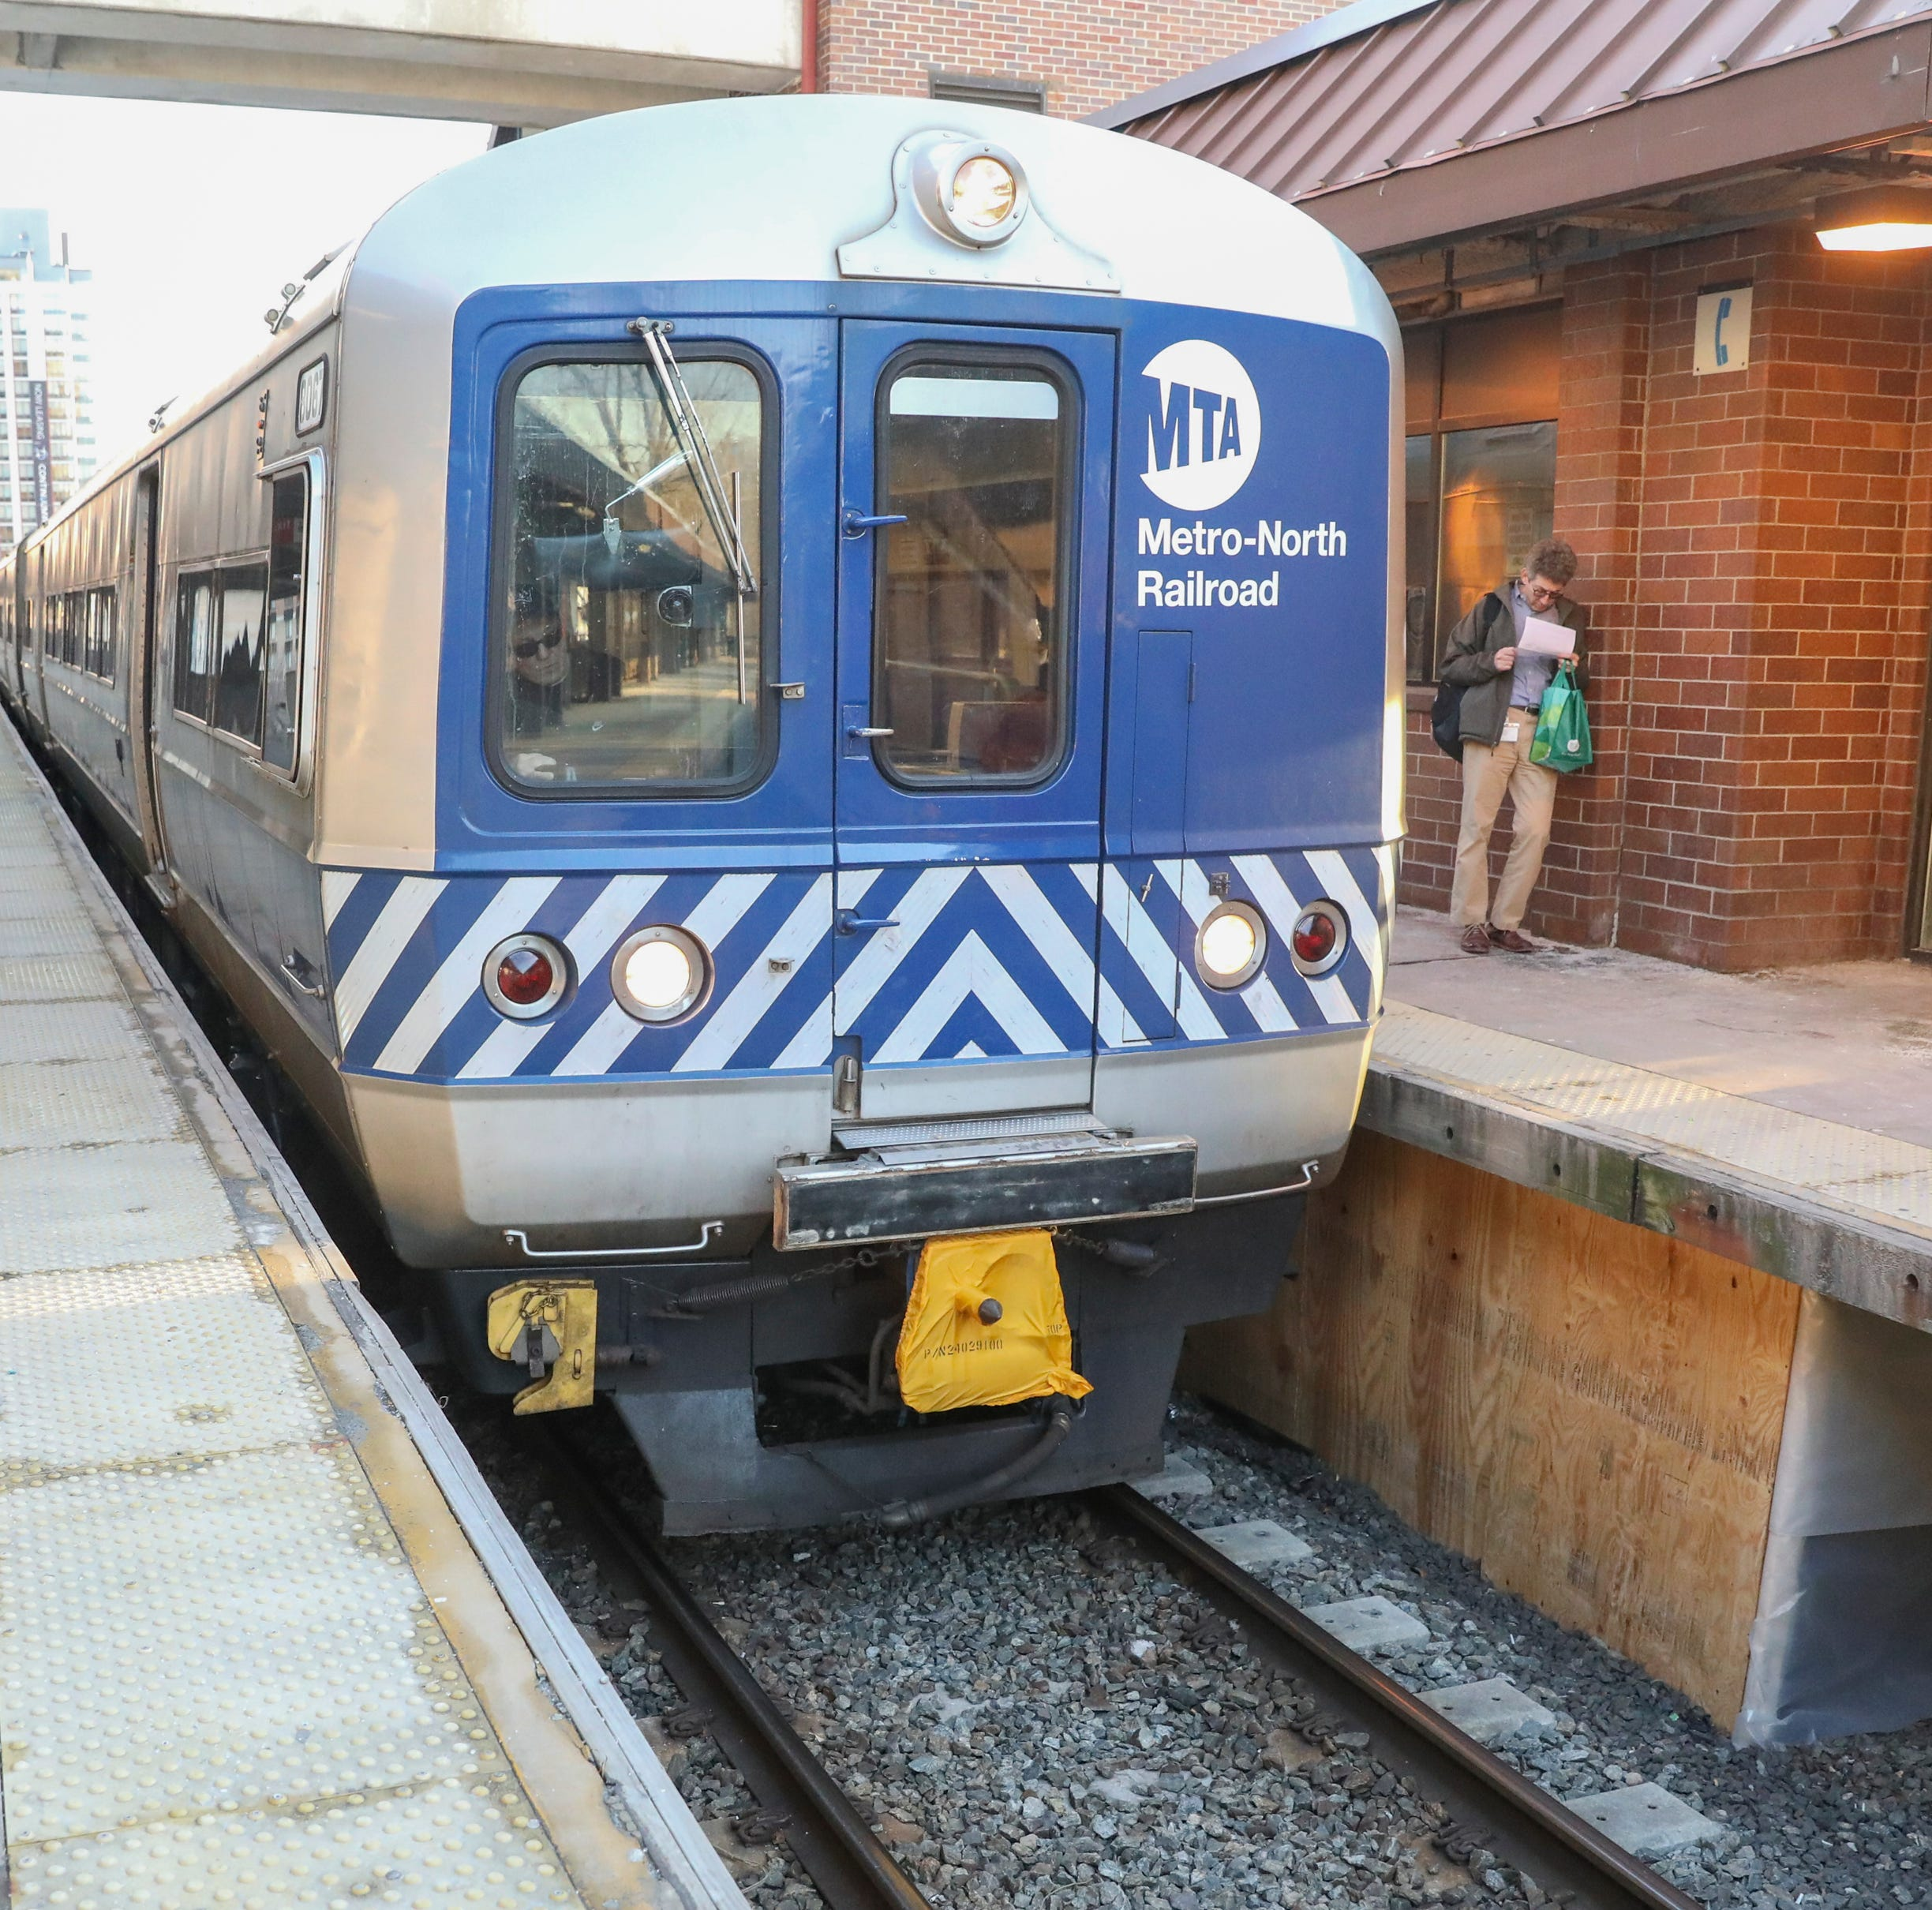 Metro-North Railroad trains delayed due to track condition, power issues